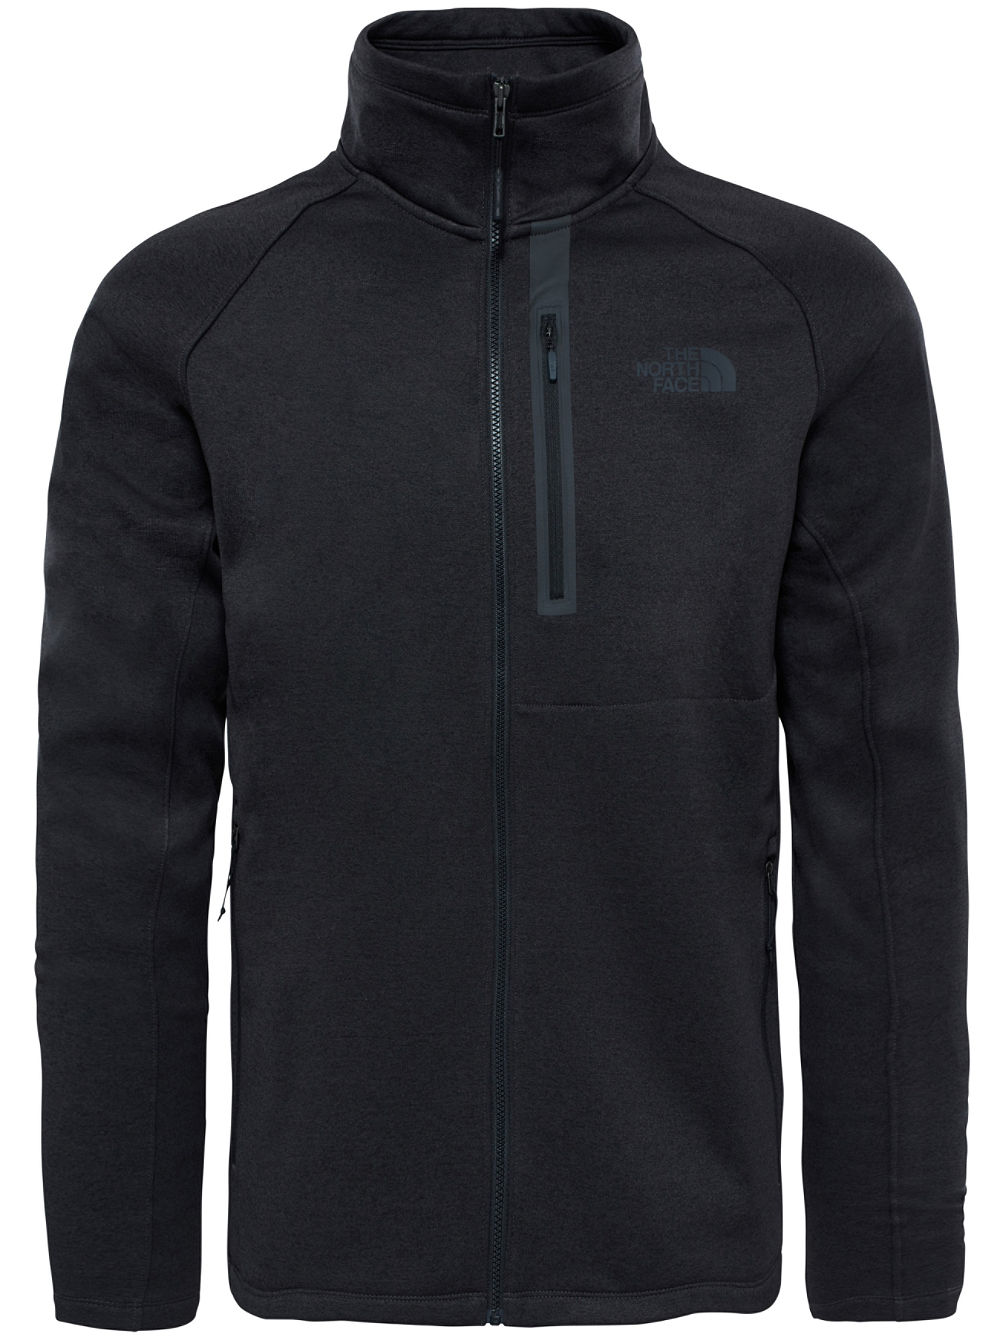 Canyonlands Fleece Jacket